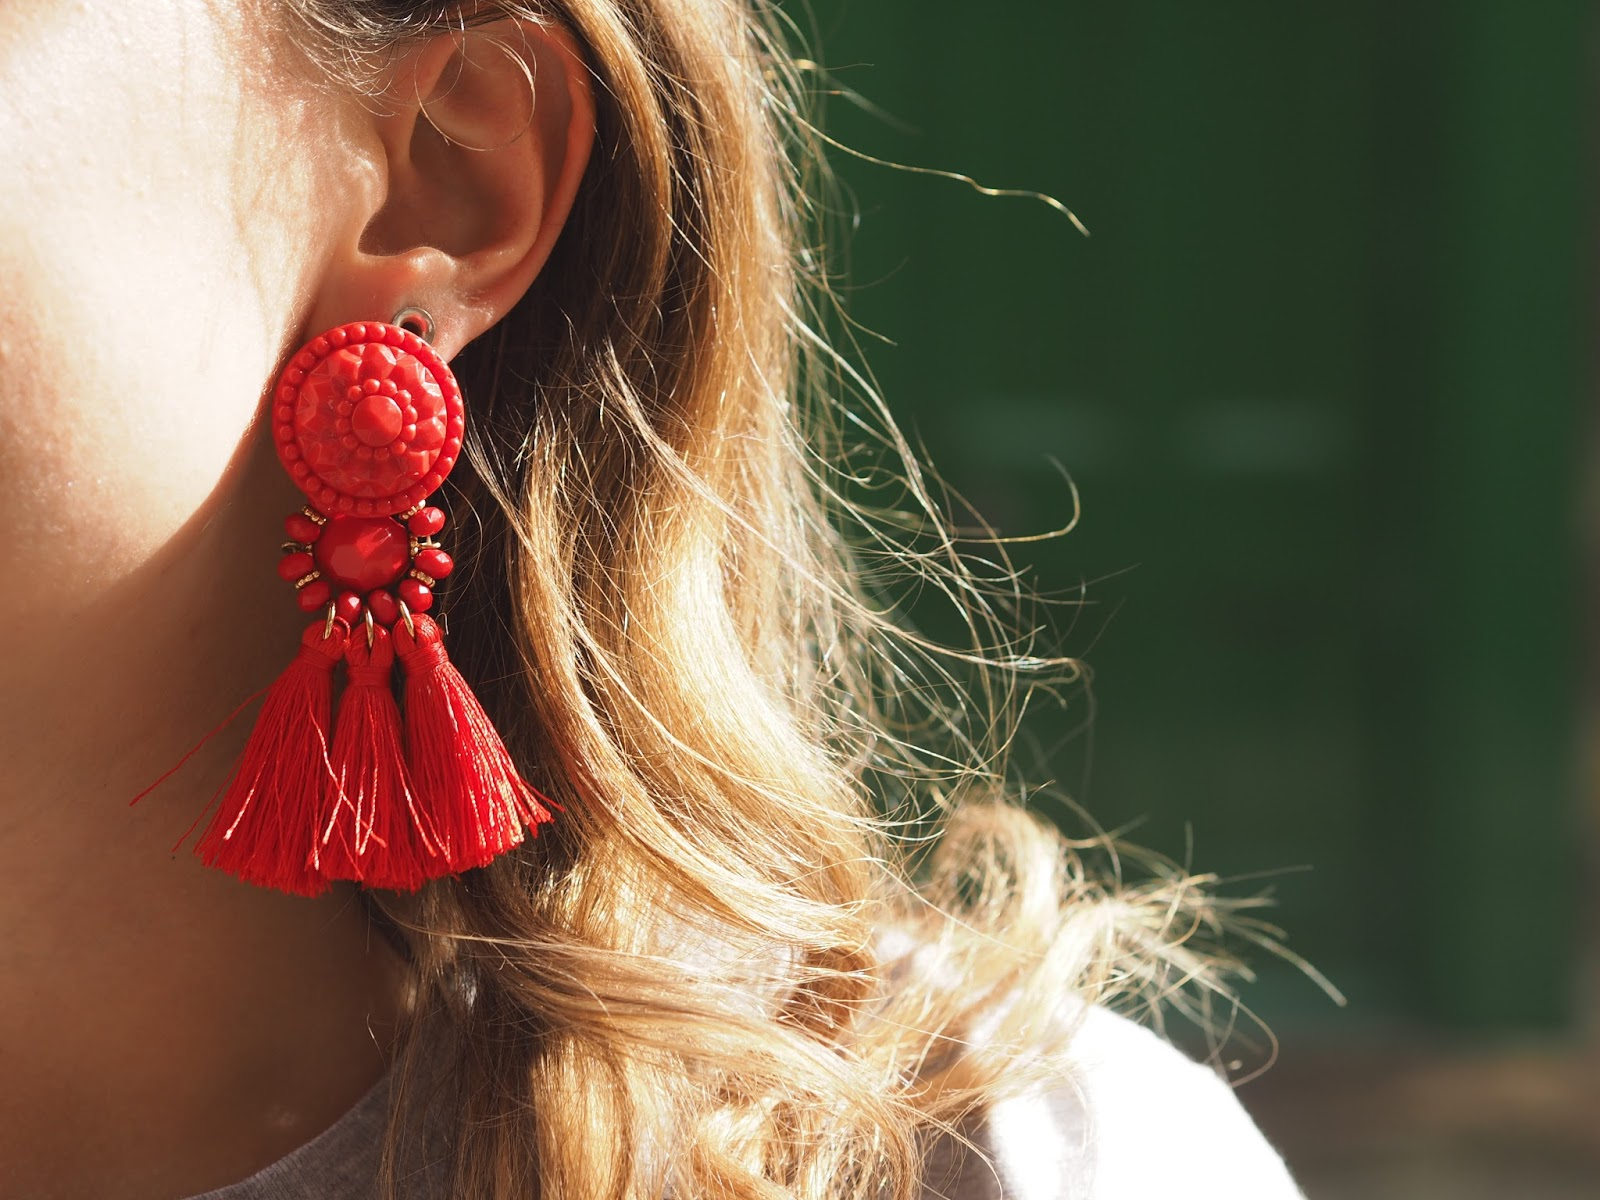 hm red earrings